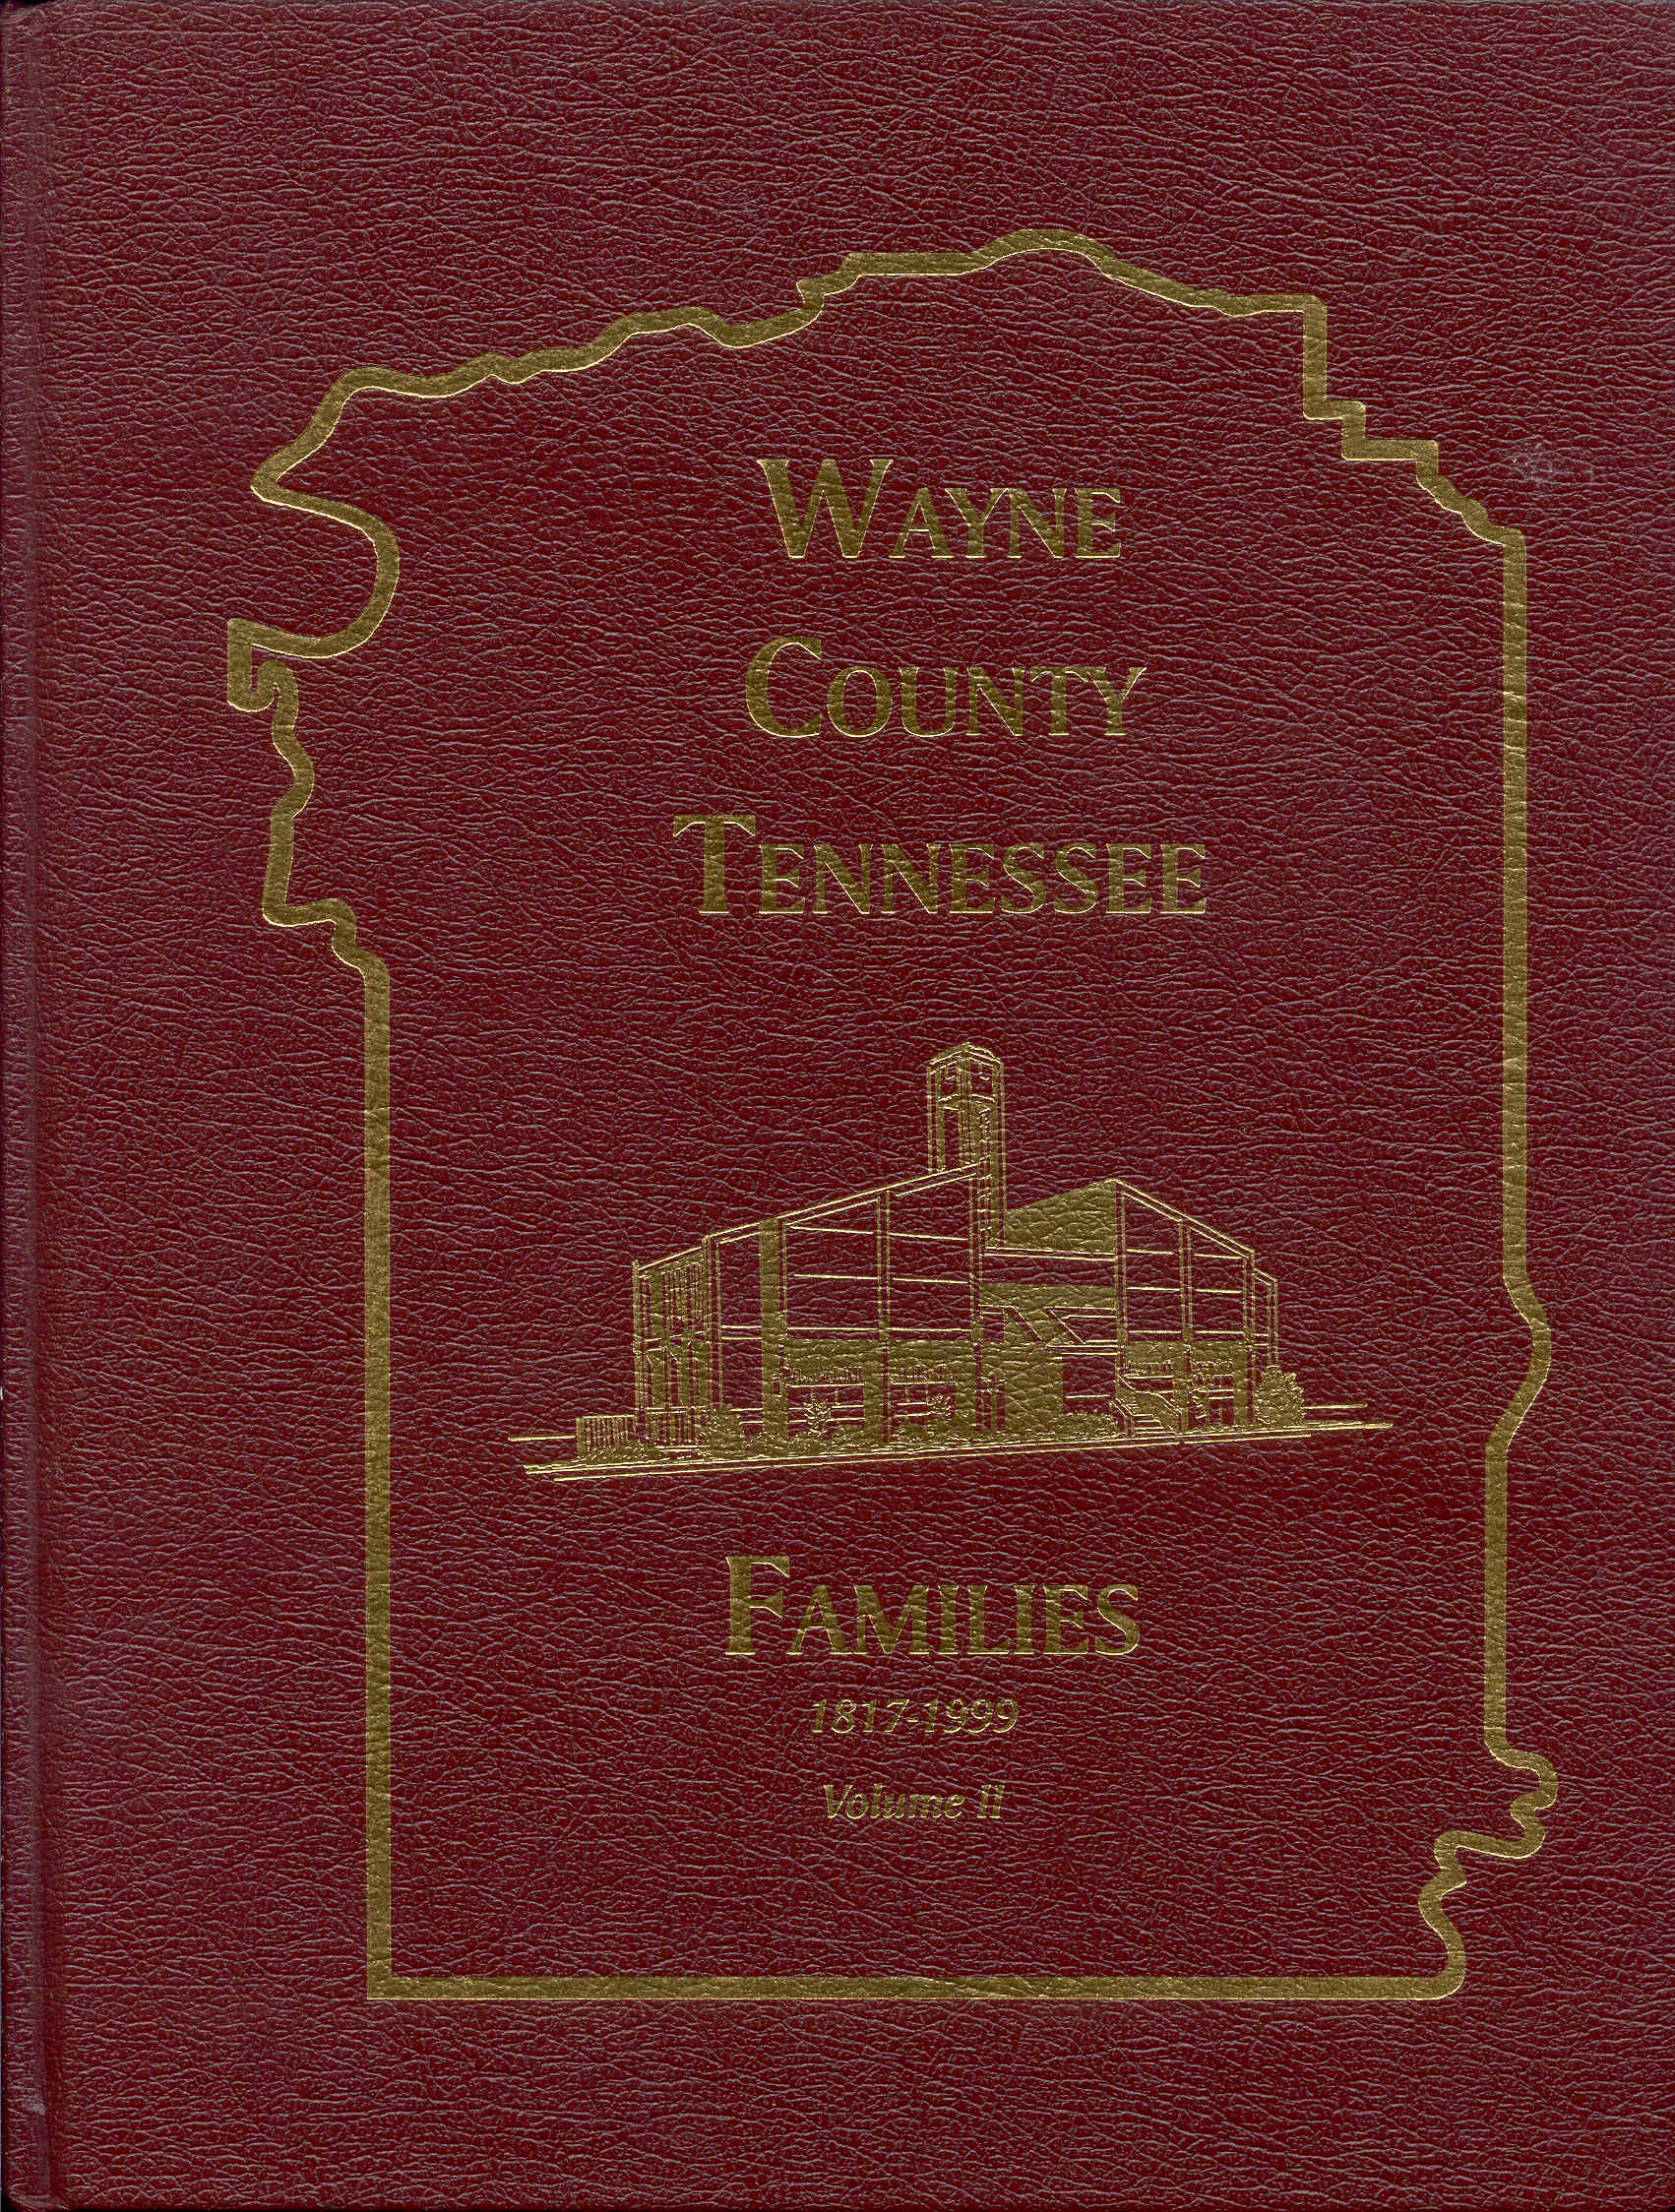 Image for Wayne County Tennessee Families 1817-1999 (Volume II)